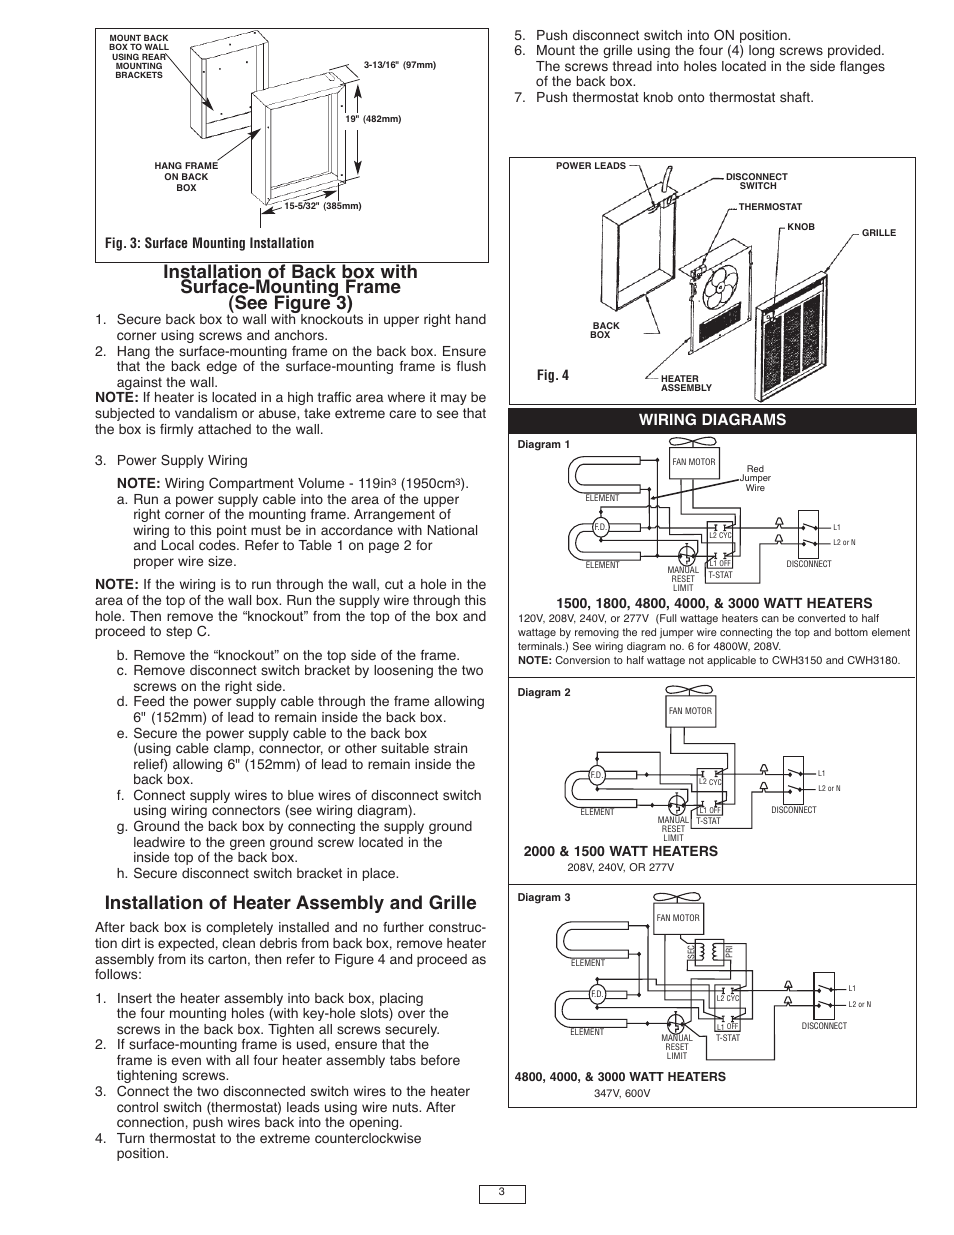 qmark heater wiring diagram installation of heater assembly and grille, wiring ... fiat scudo heater wiring diagram #2